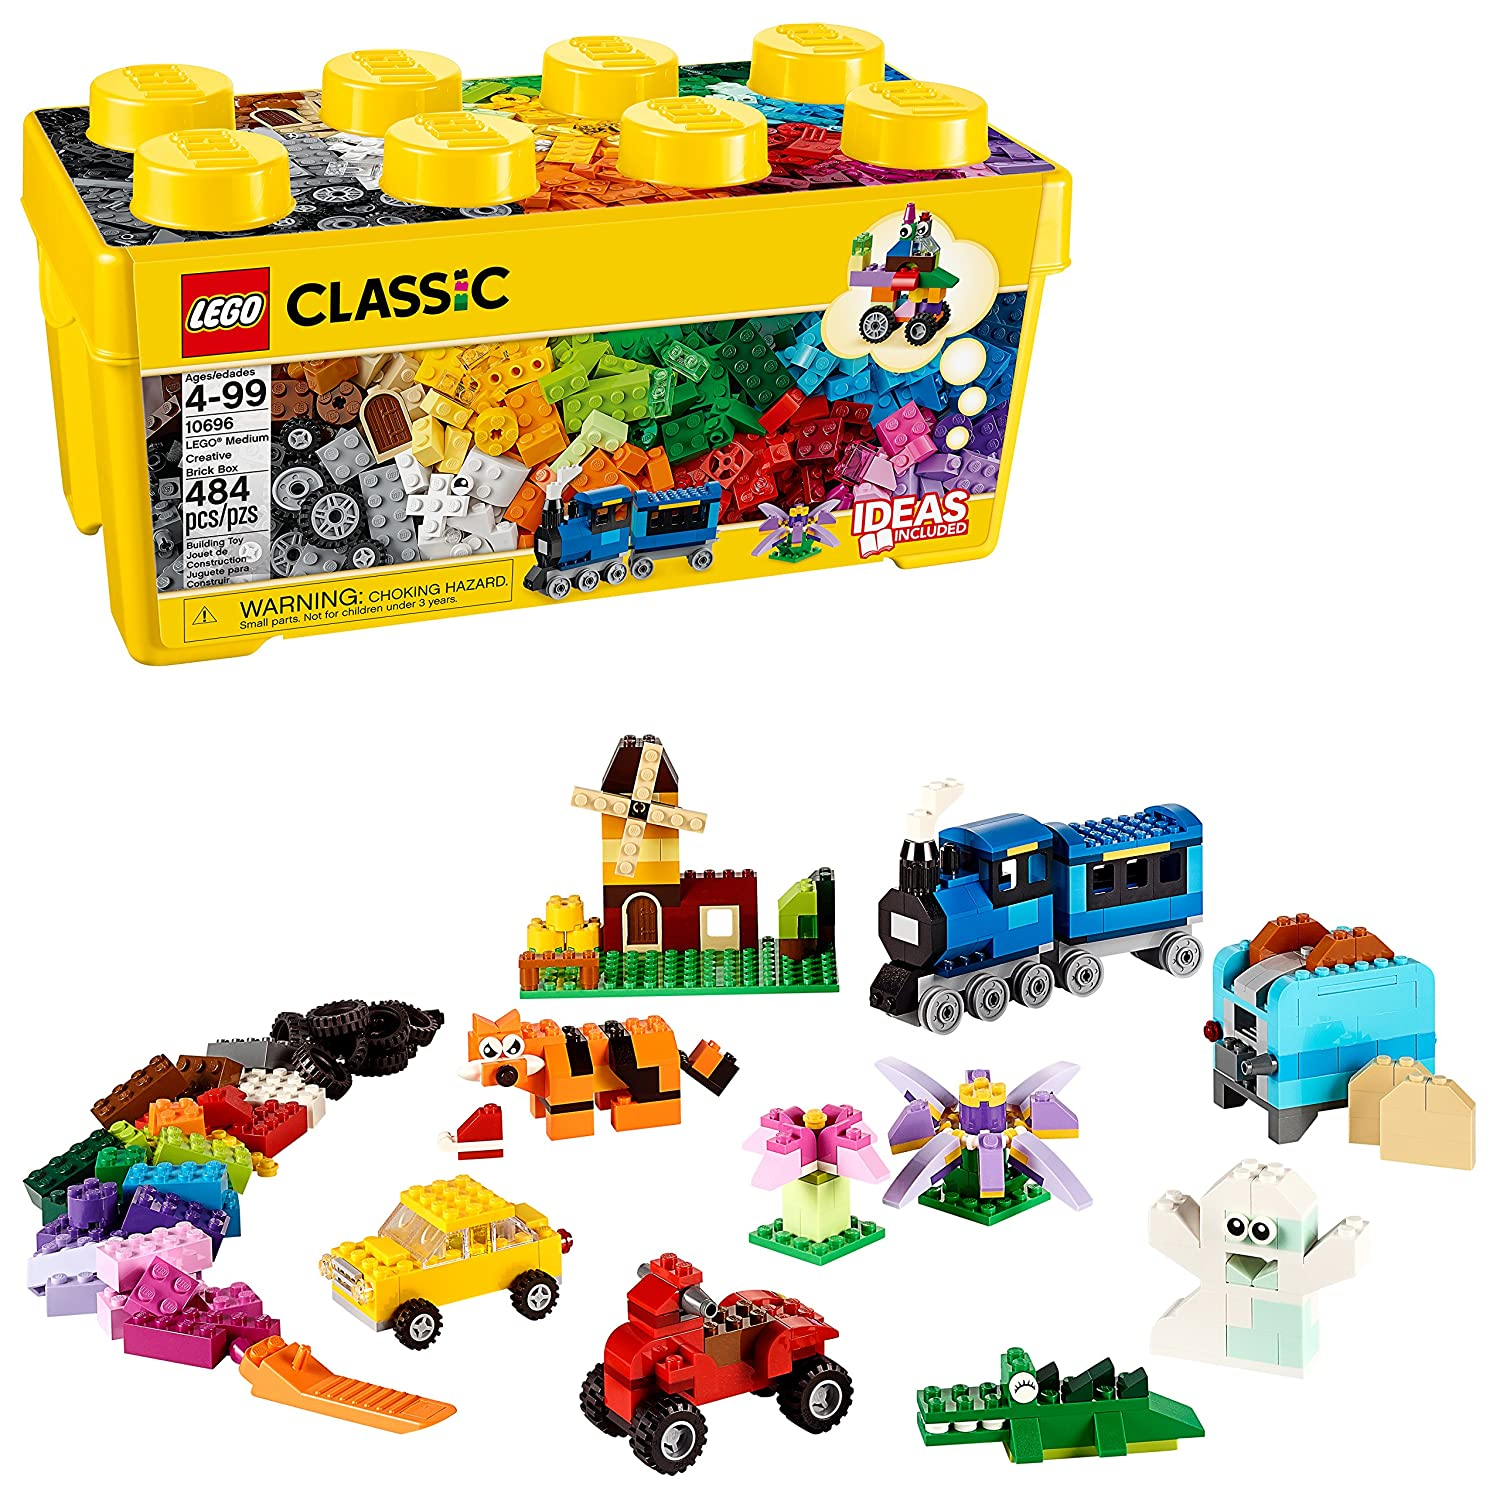 LEGO Classic Medium Creative Brick Box 10696 Learning Toy 6102212